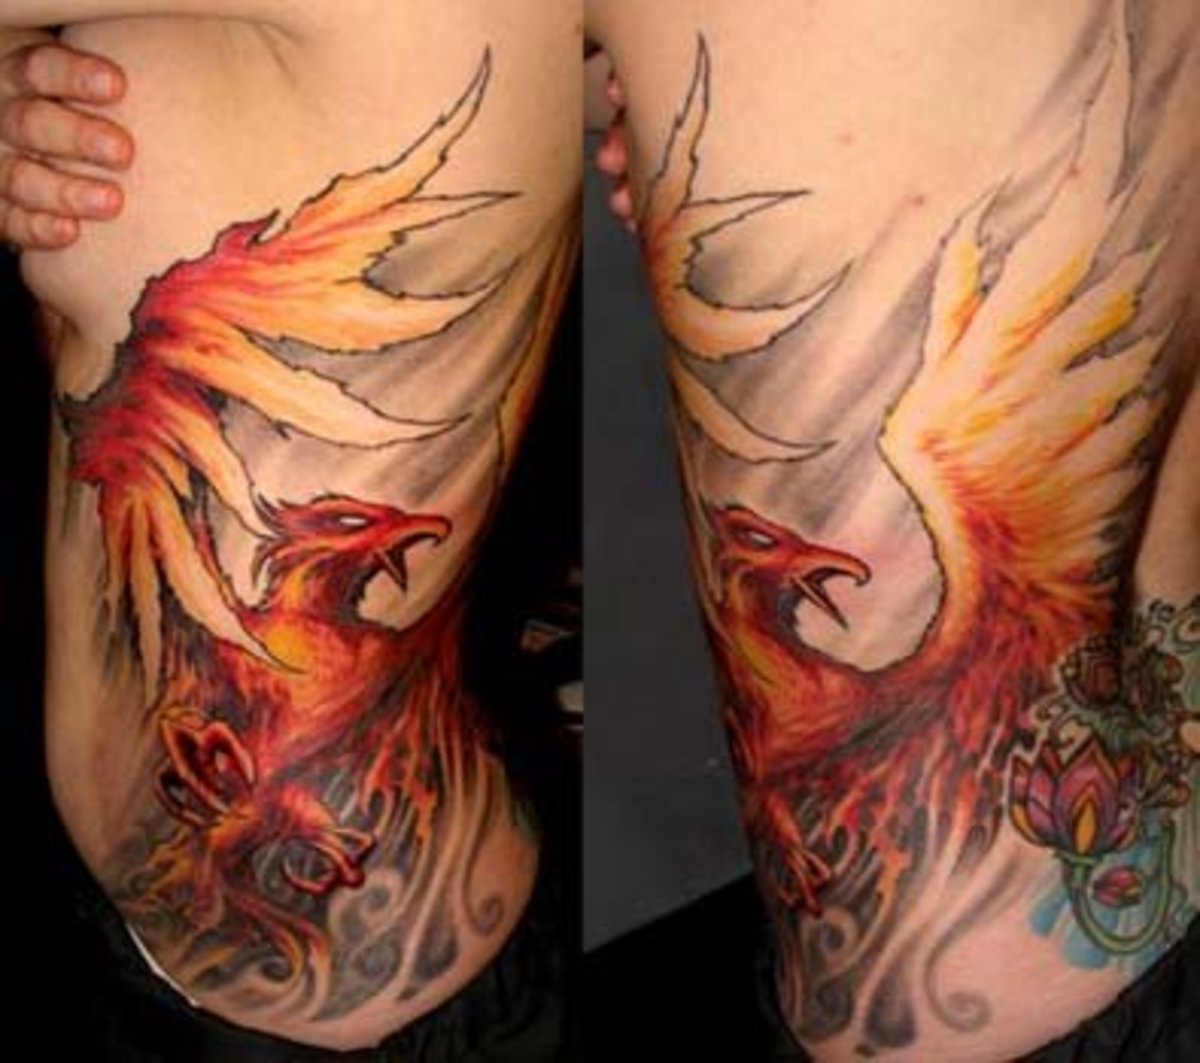 Amazing Tattoo Phoenix Design Photo on Woman's Side